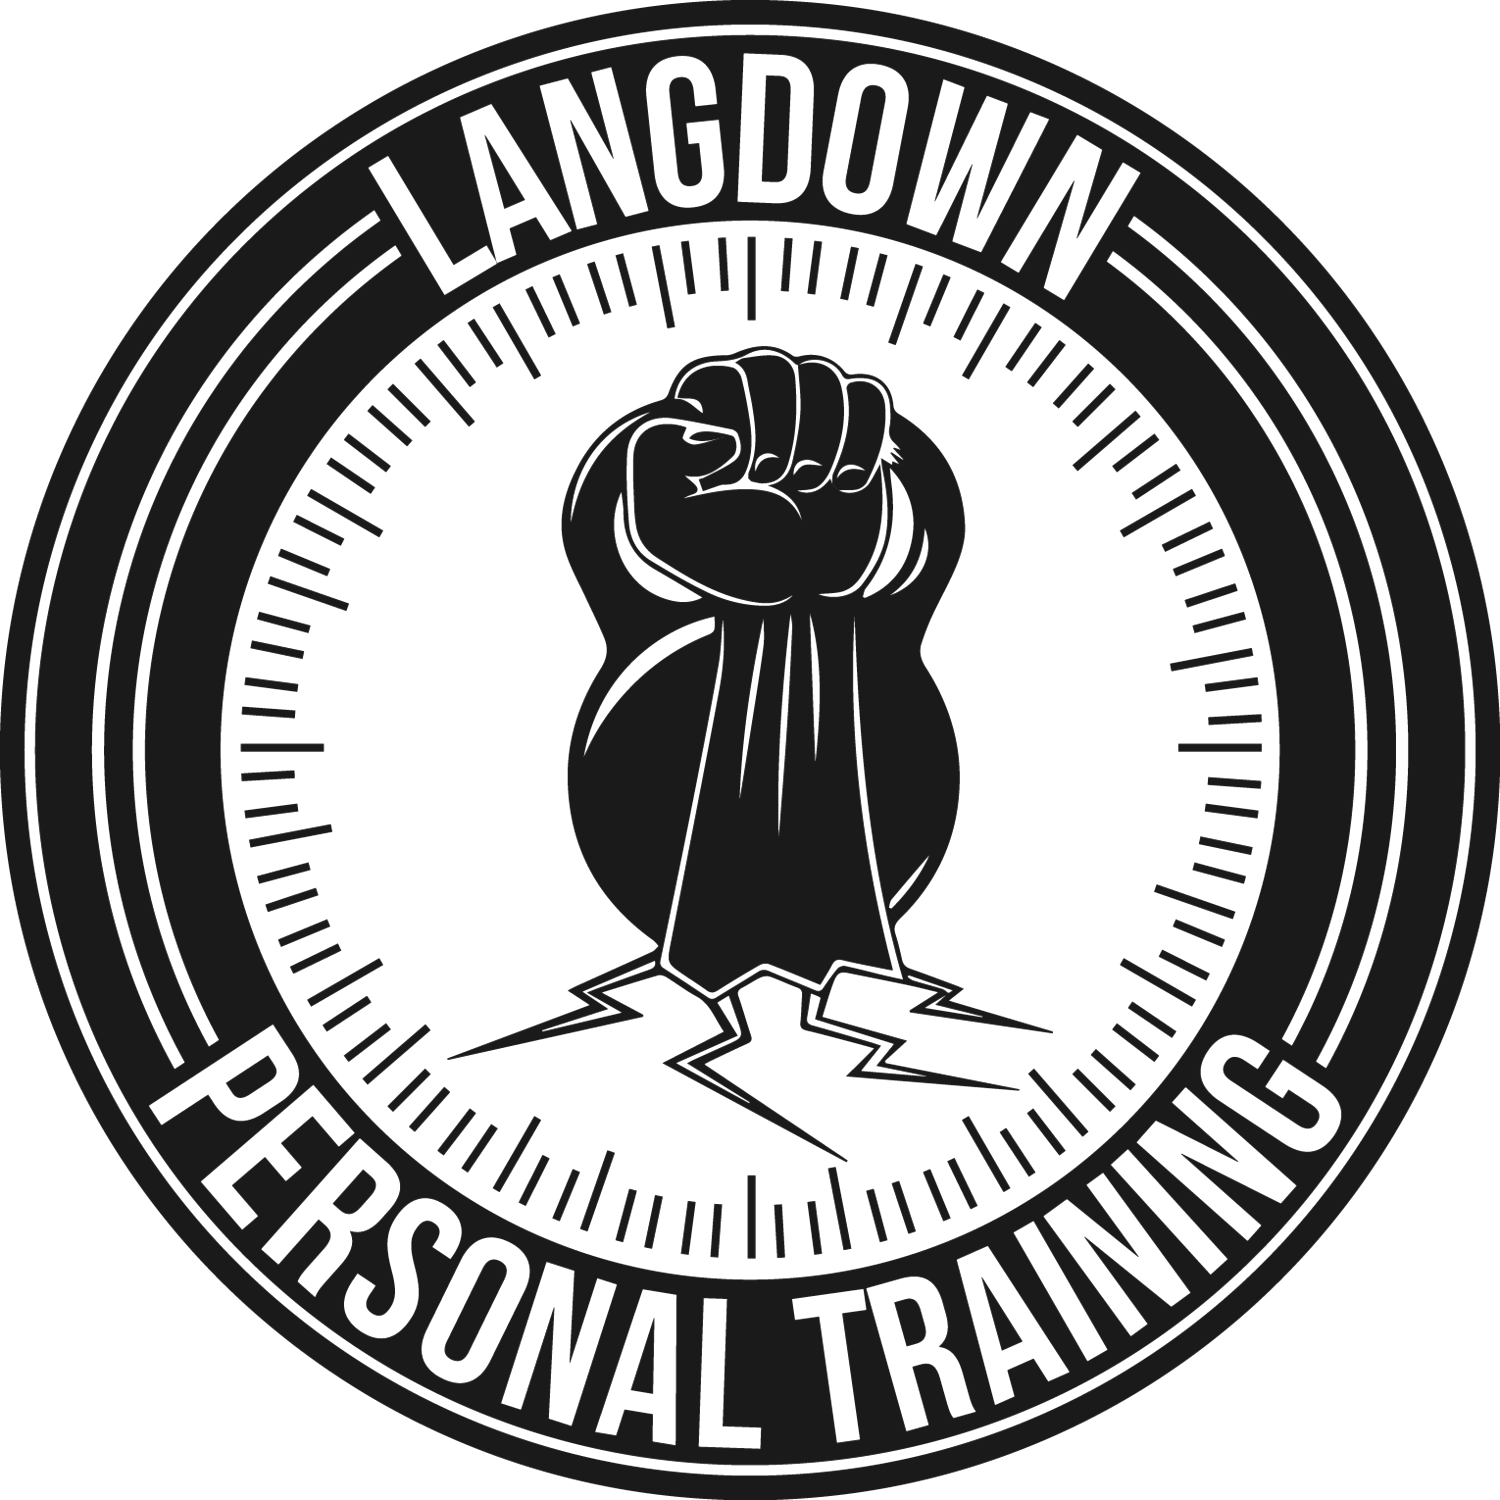 Langdown Personal Training